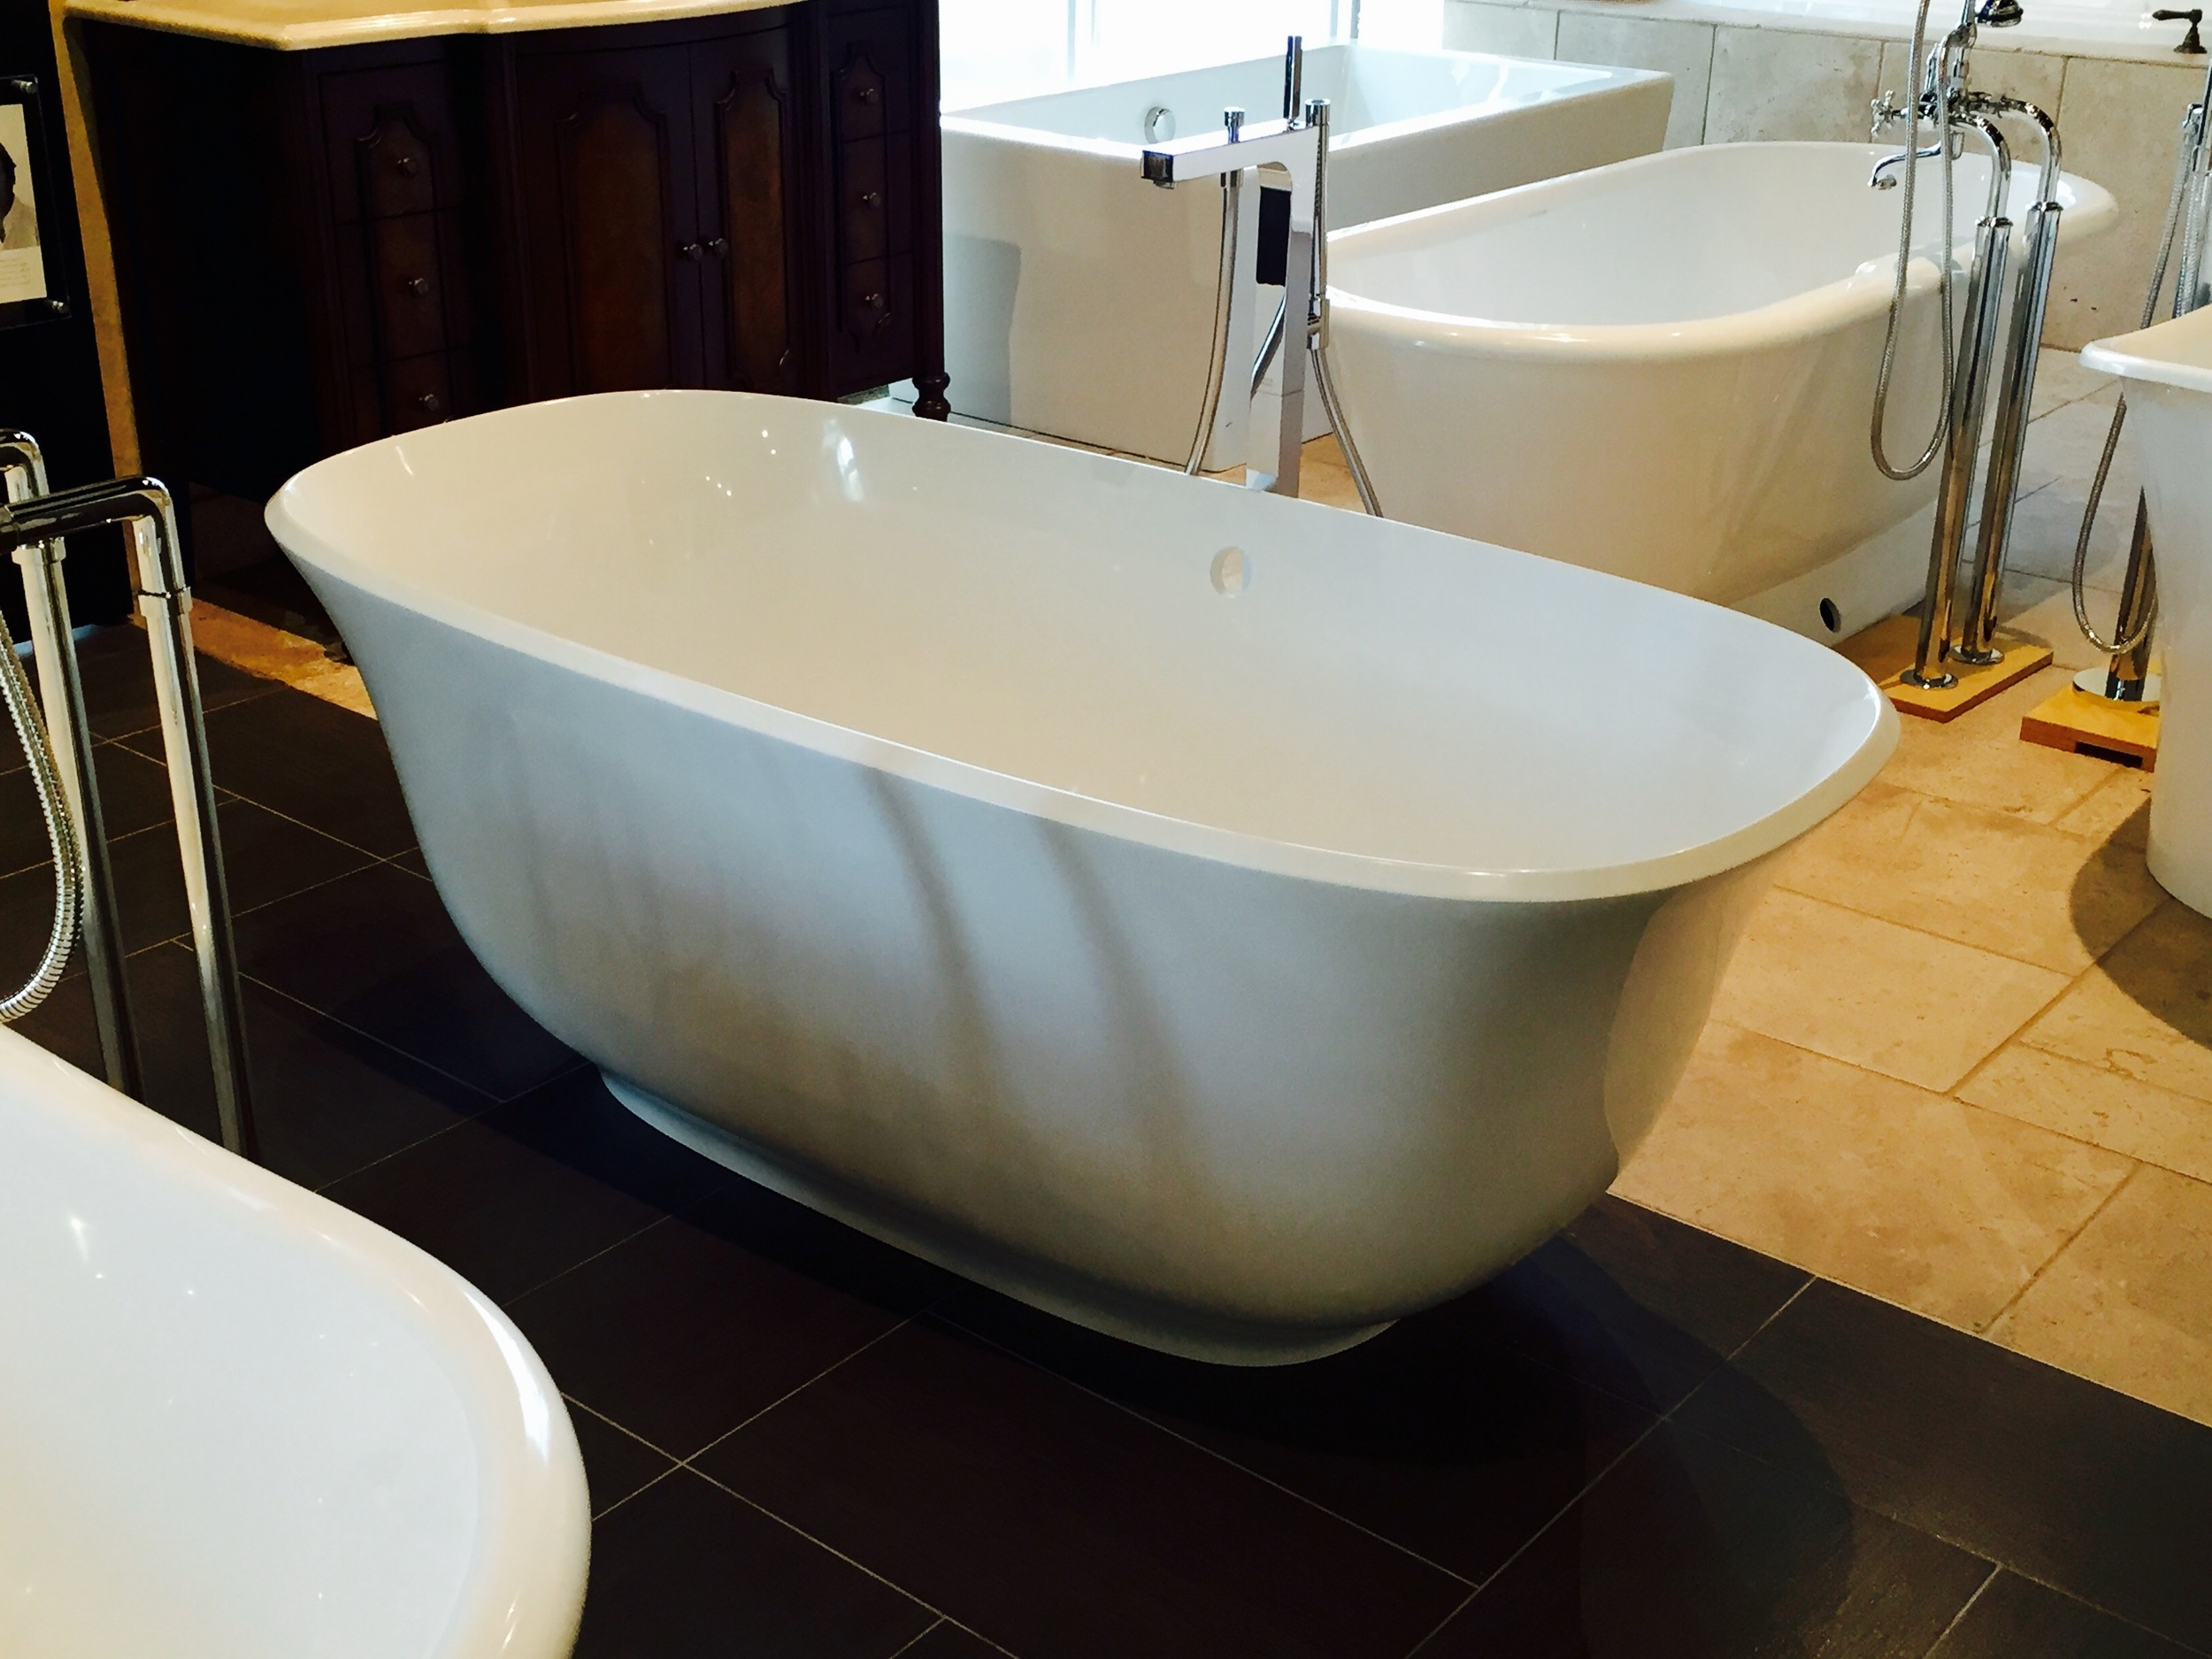 The  Amiata  tub has a graceful curved shape but it is still too long.